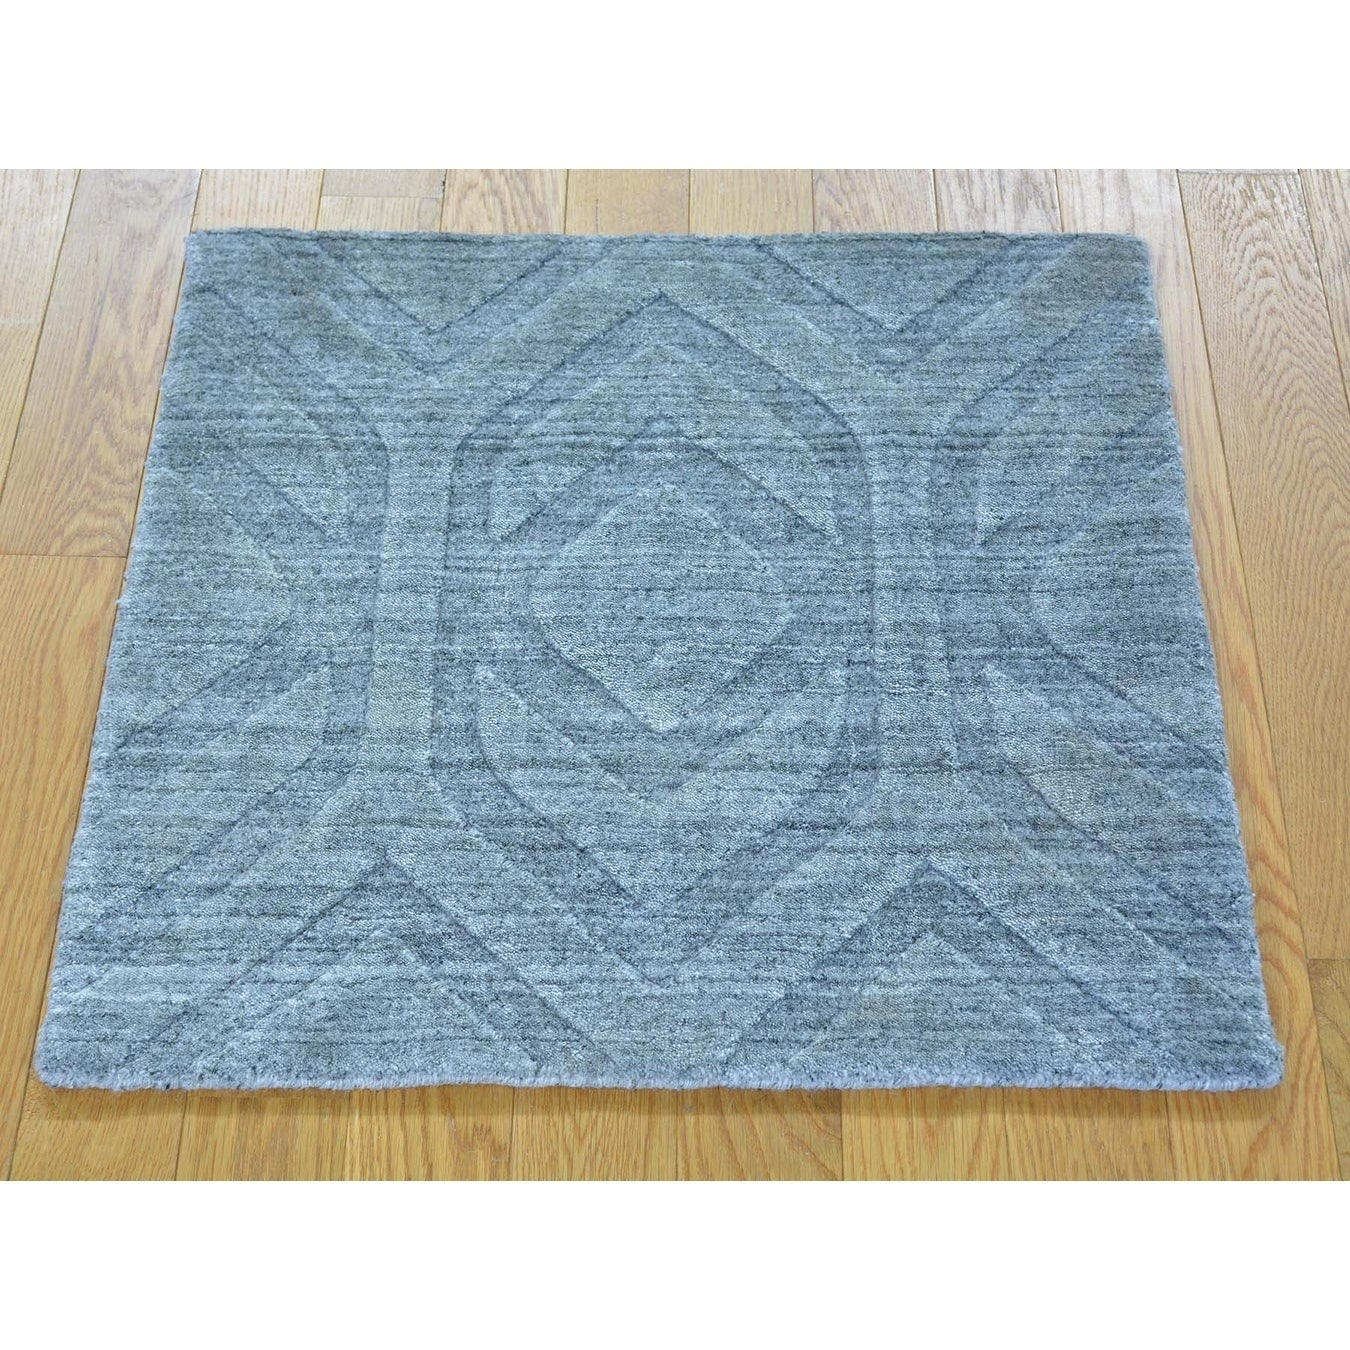 Hand Knotted Grey Modern & Contemporary with Wool & Silk Oriental Rug - 21 x 21